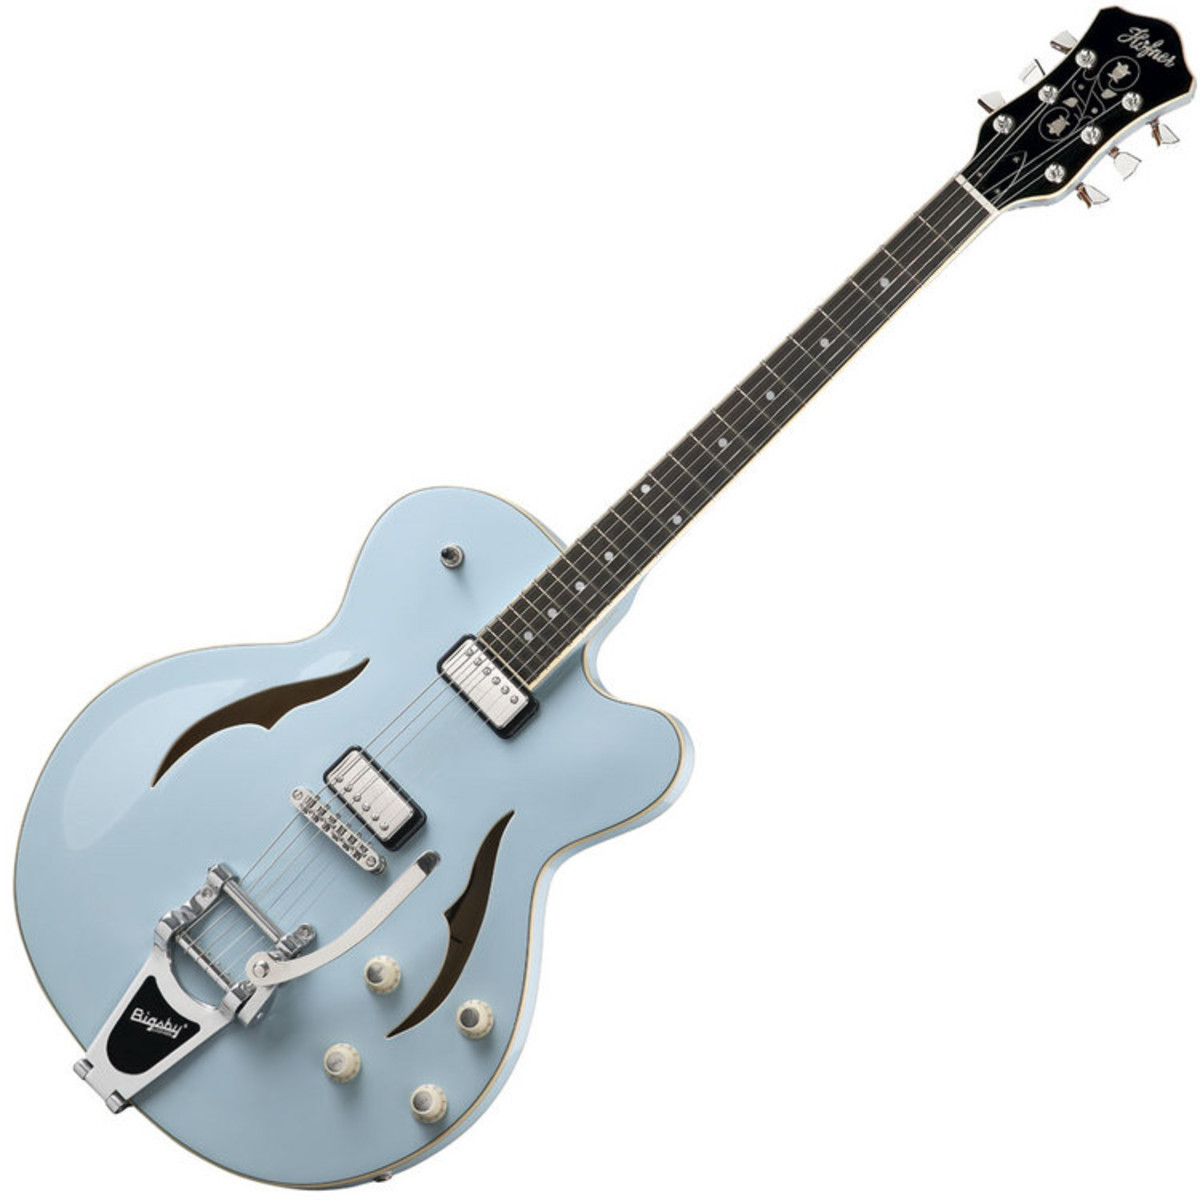 hofner verythin single cutaway electric guitar light blue at. Black Bedroom Furniture Sets. Home Design Ideas